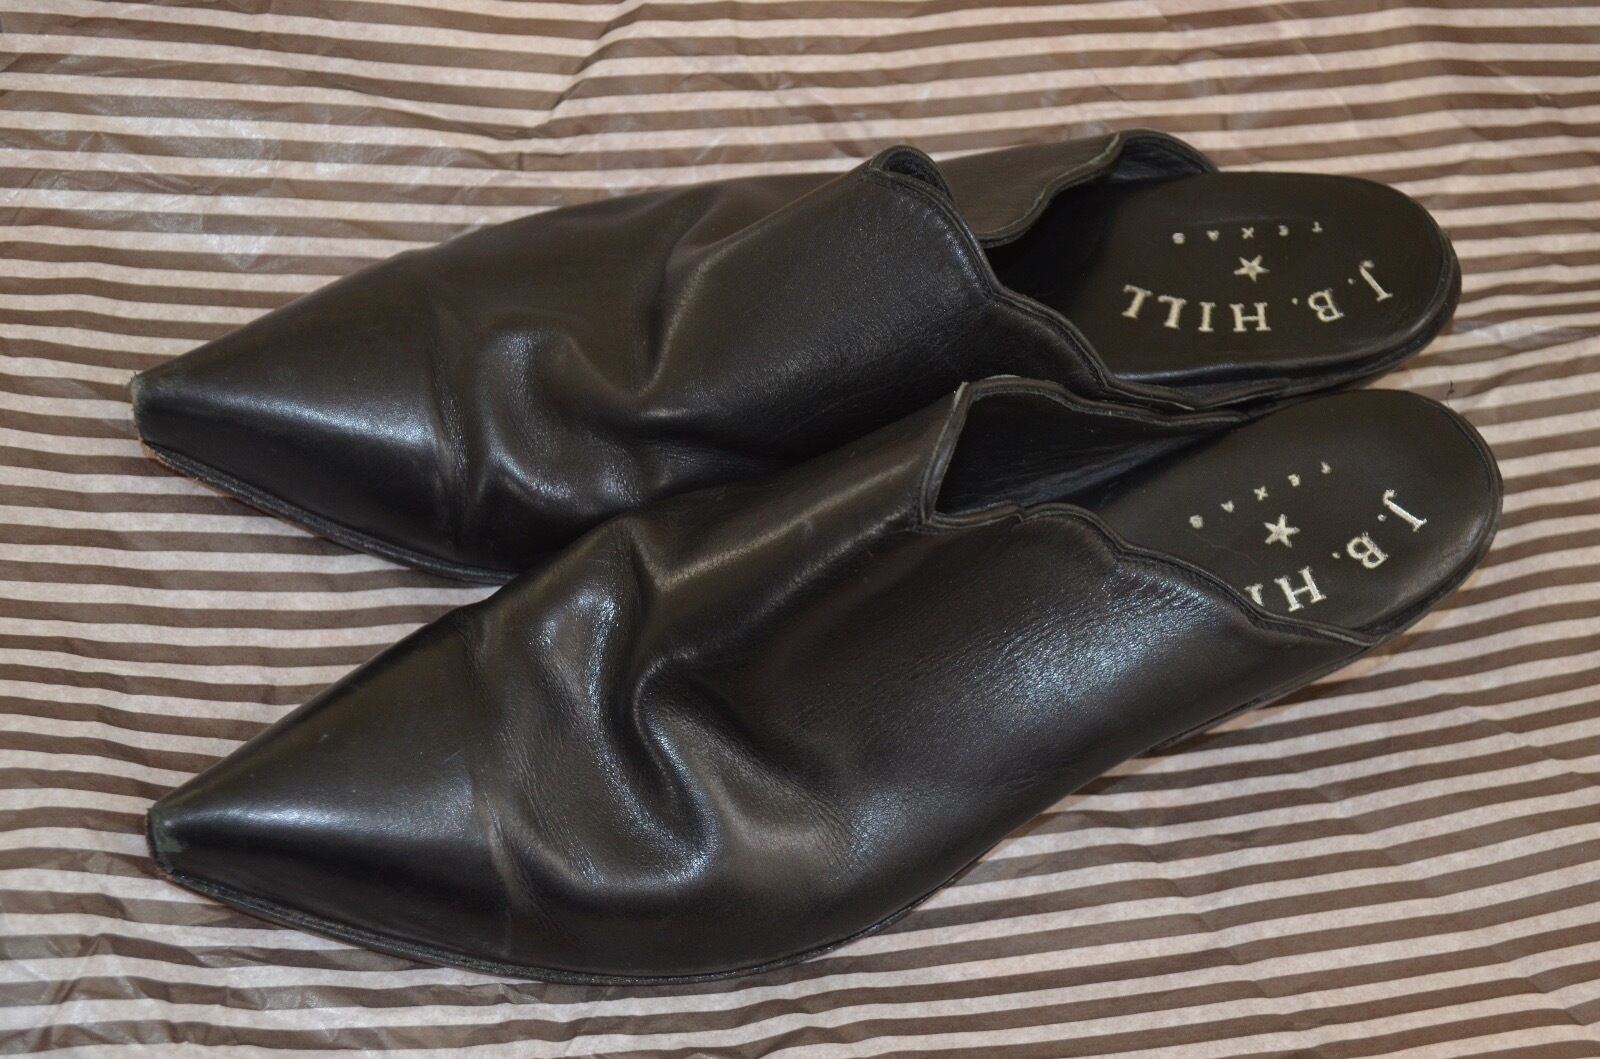 J. B. HILL BLACK LEATHER MULE's are CUSTOM MADE in TEXAS...WOMEN's 9B...